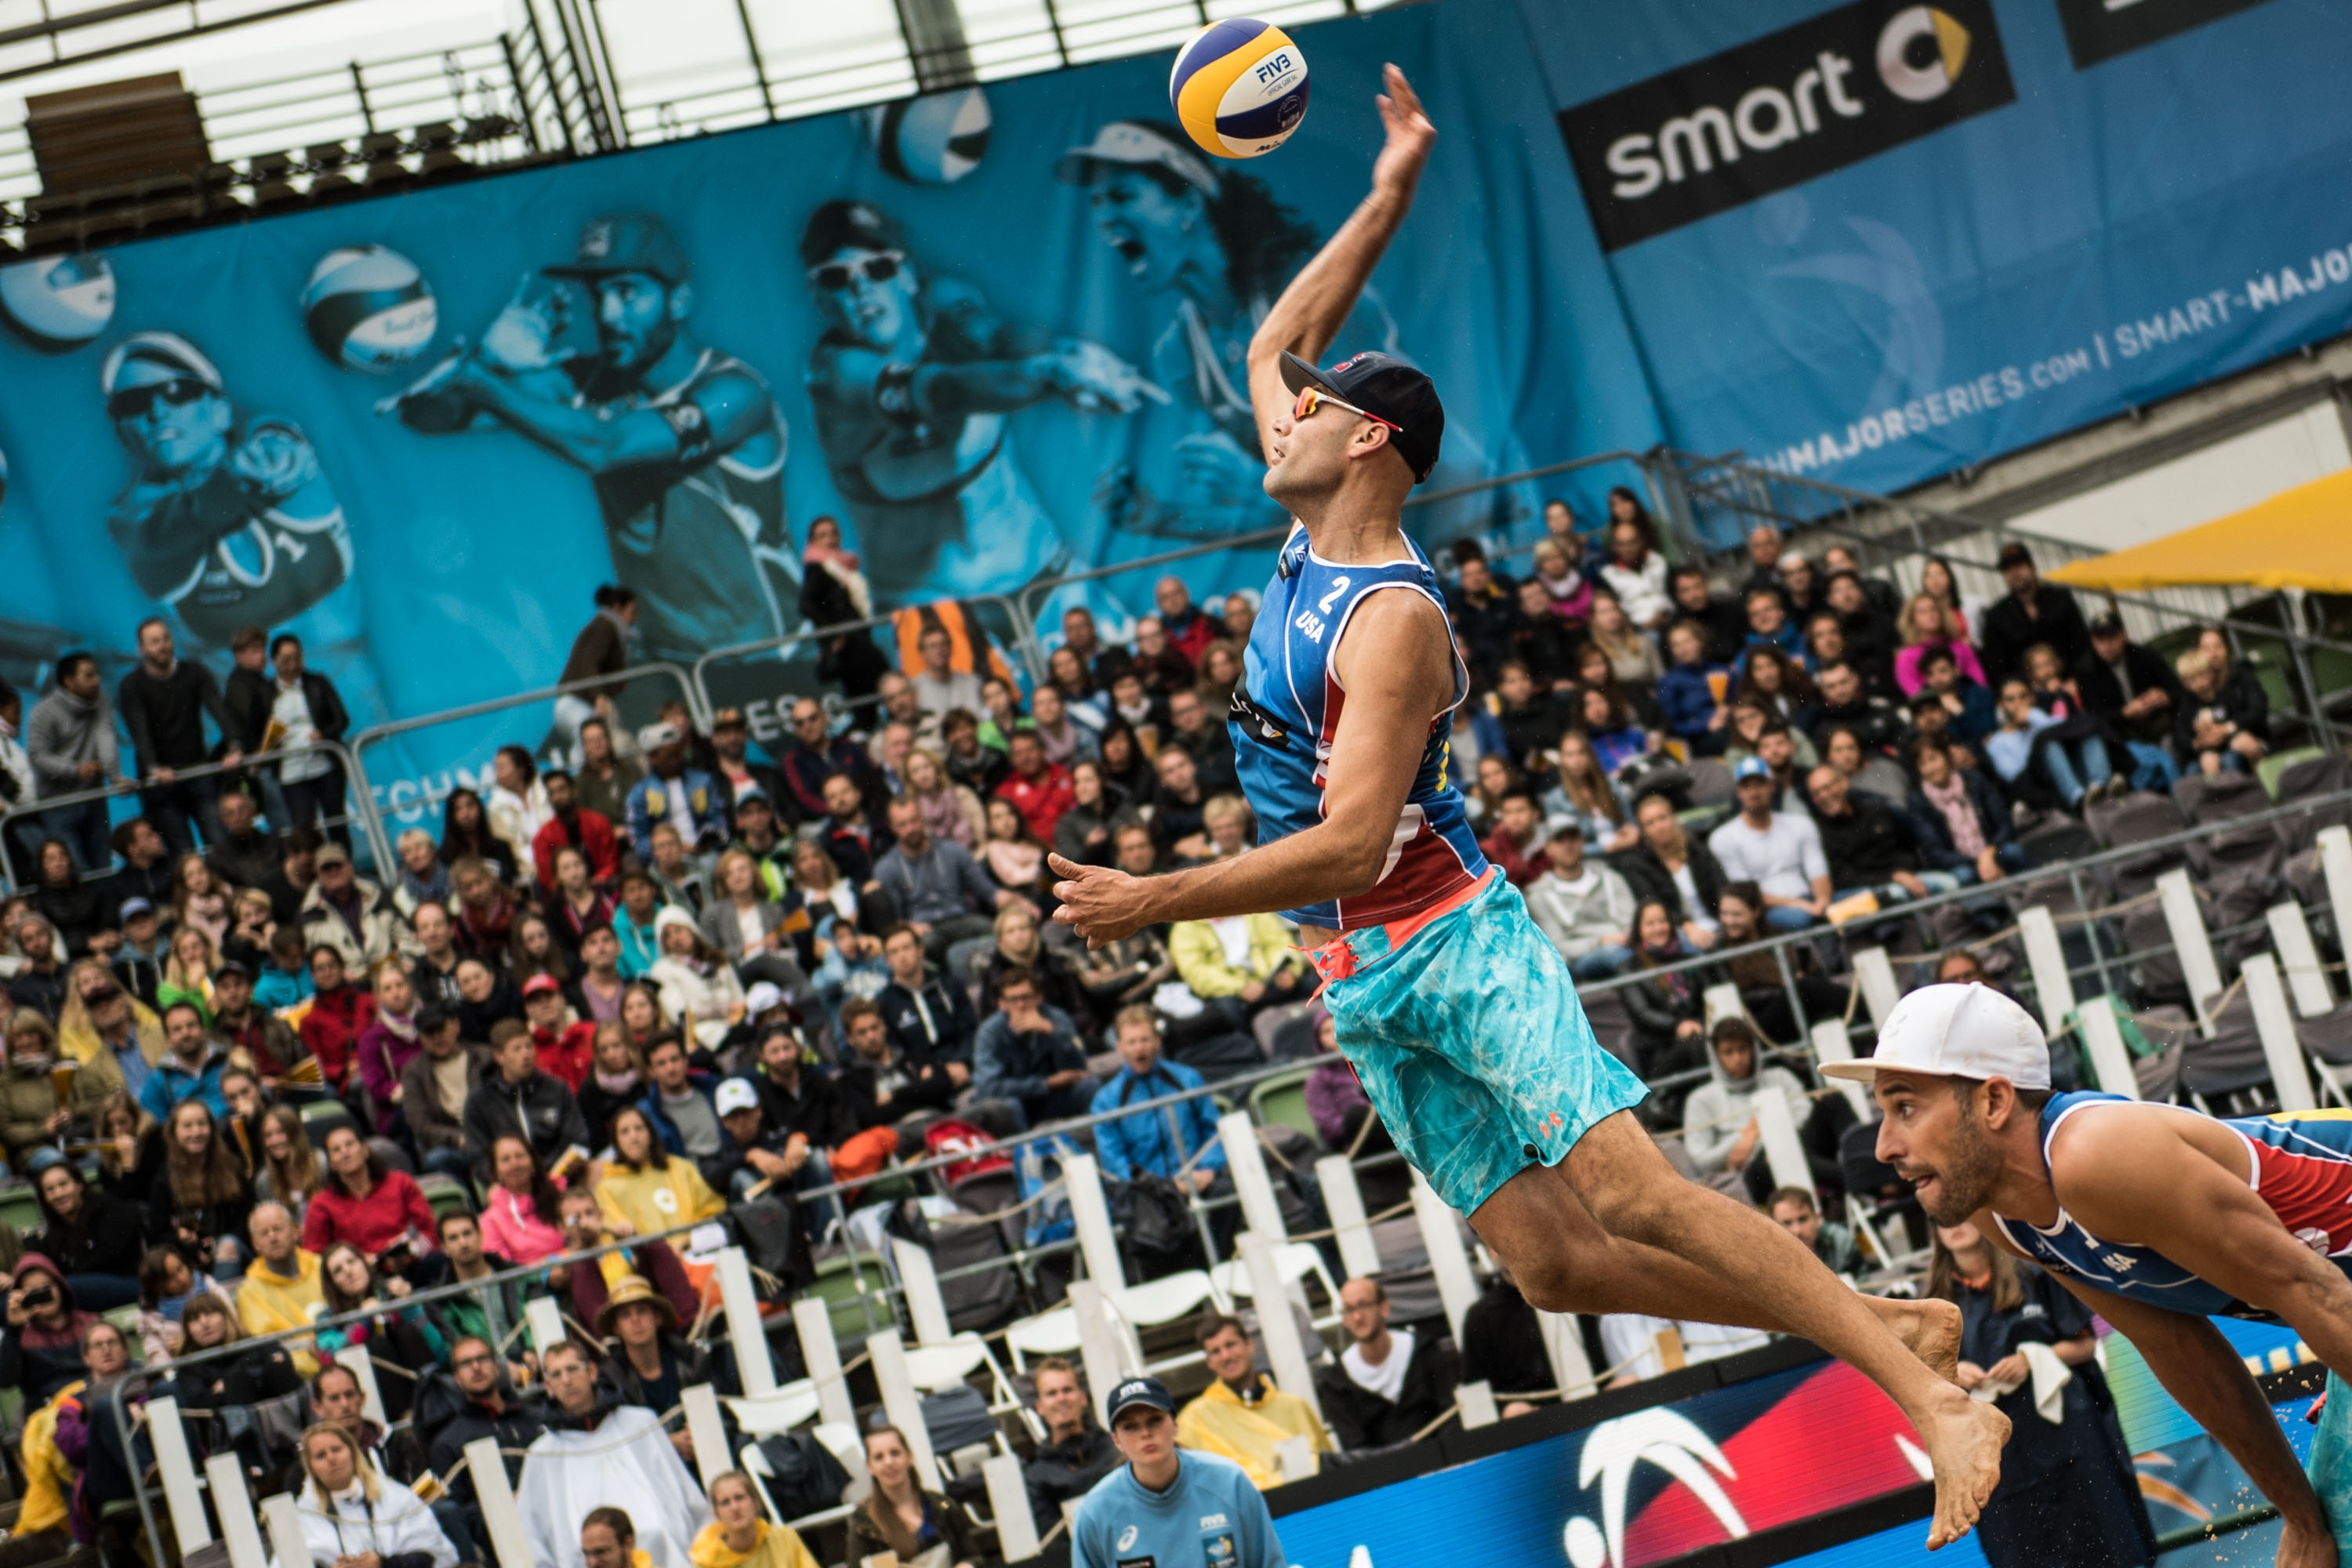 Phil Dalhausser was in unbeatable form in the final. Photocredit: Joerg Mitter.